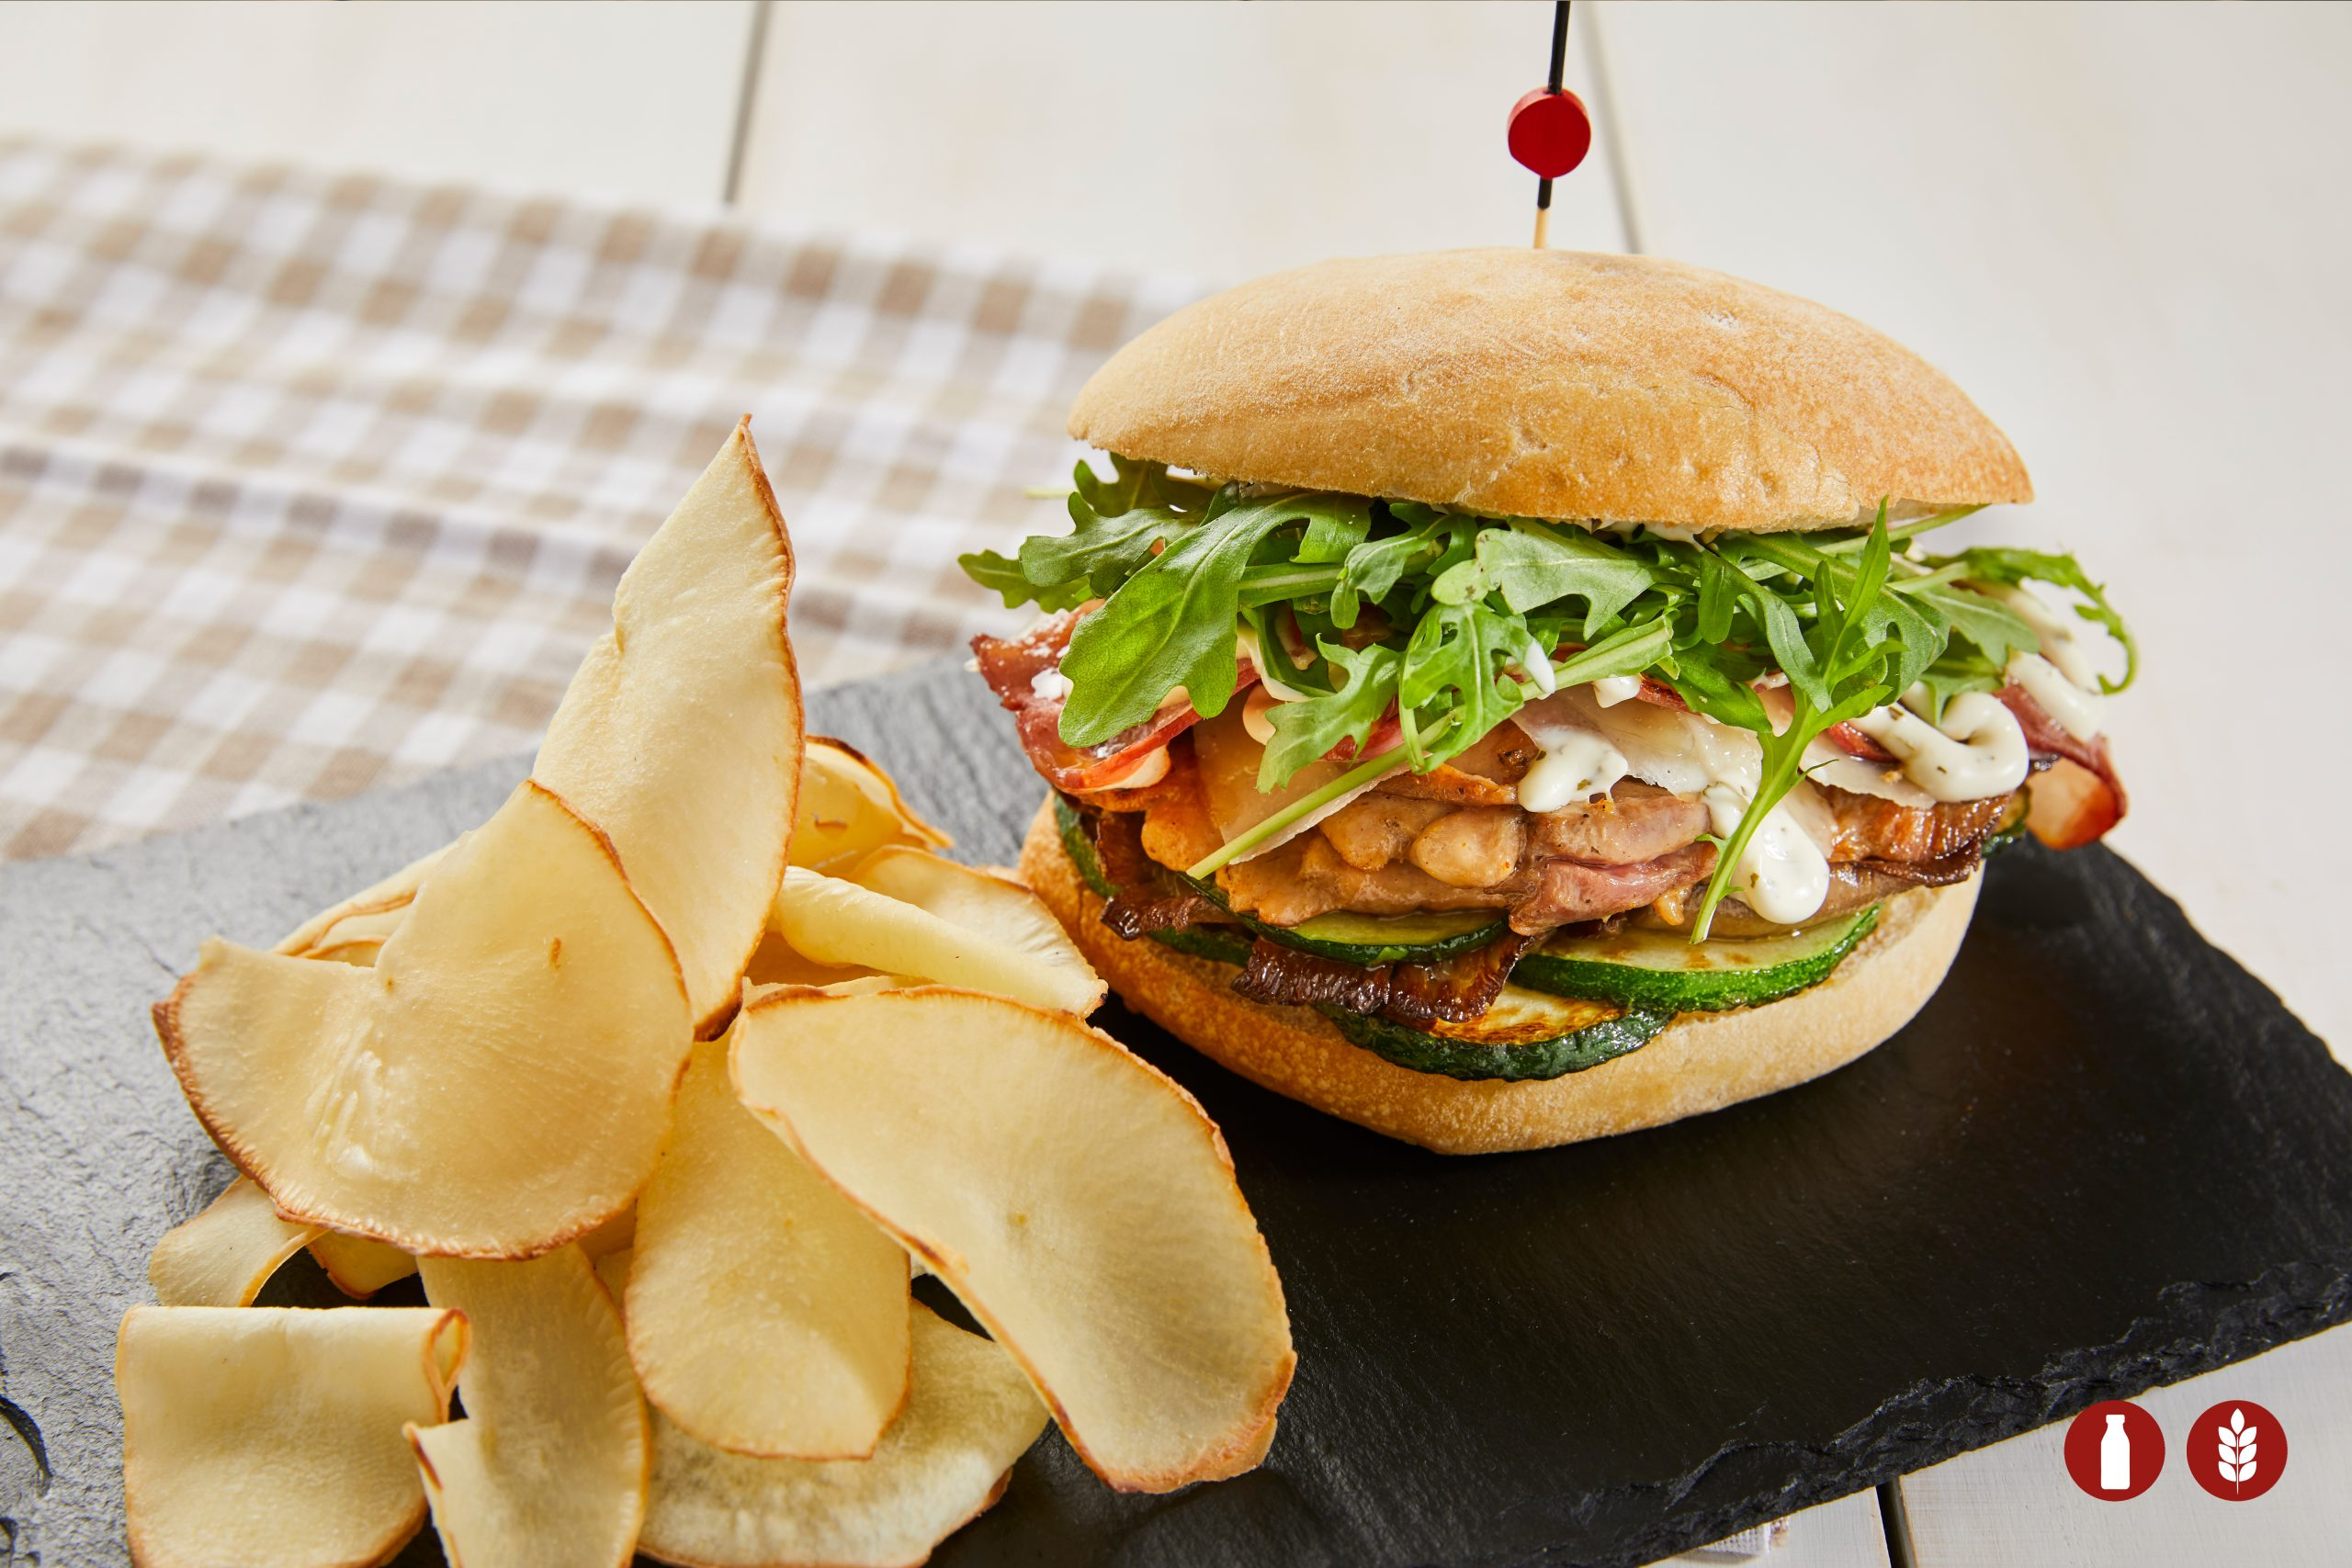 MARINATED CHICKEN SANDWICH WITH YUCA CHIPS